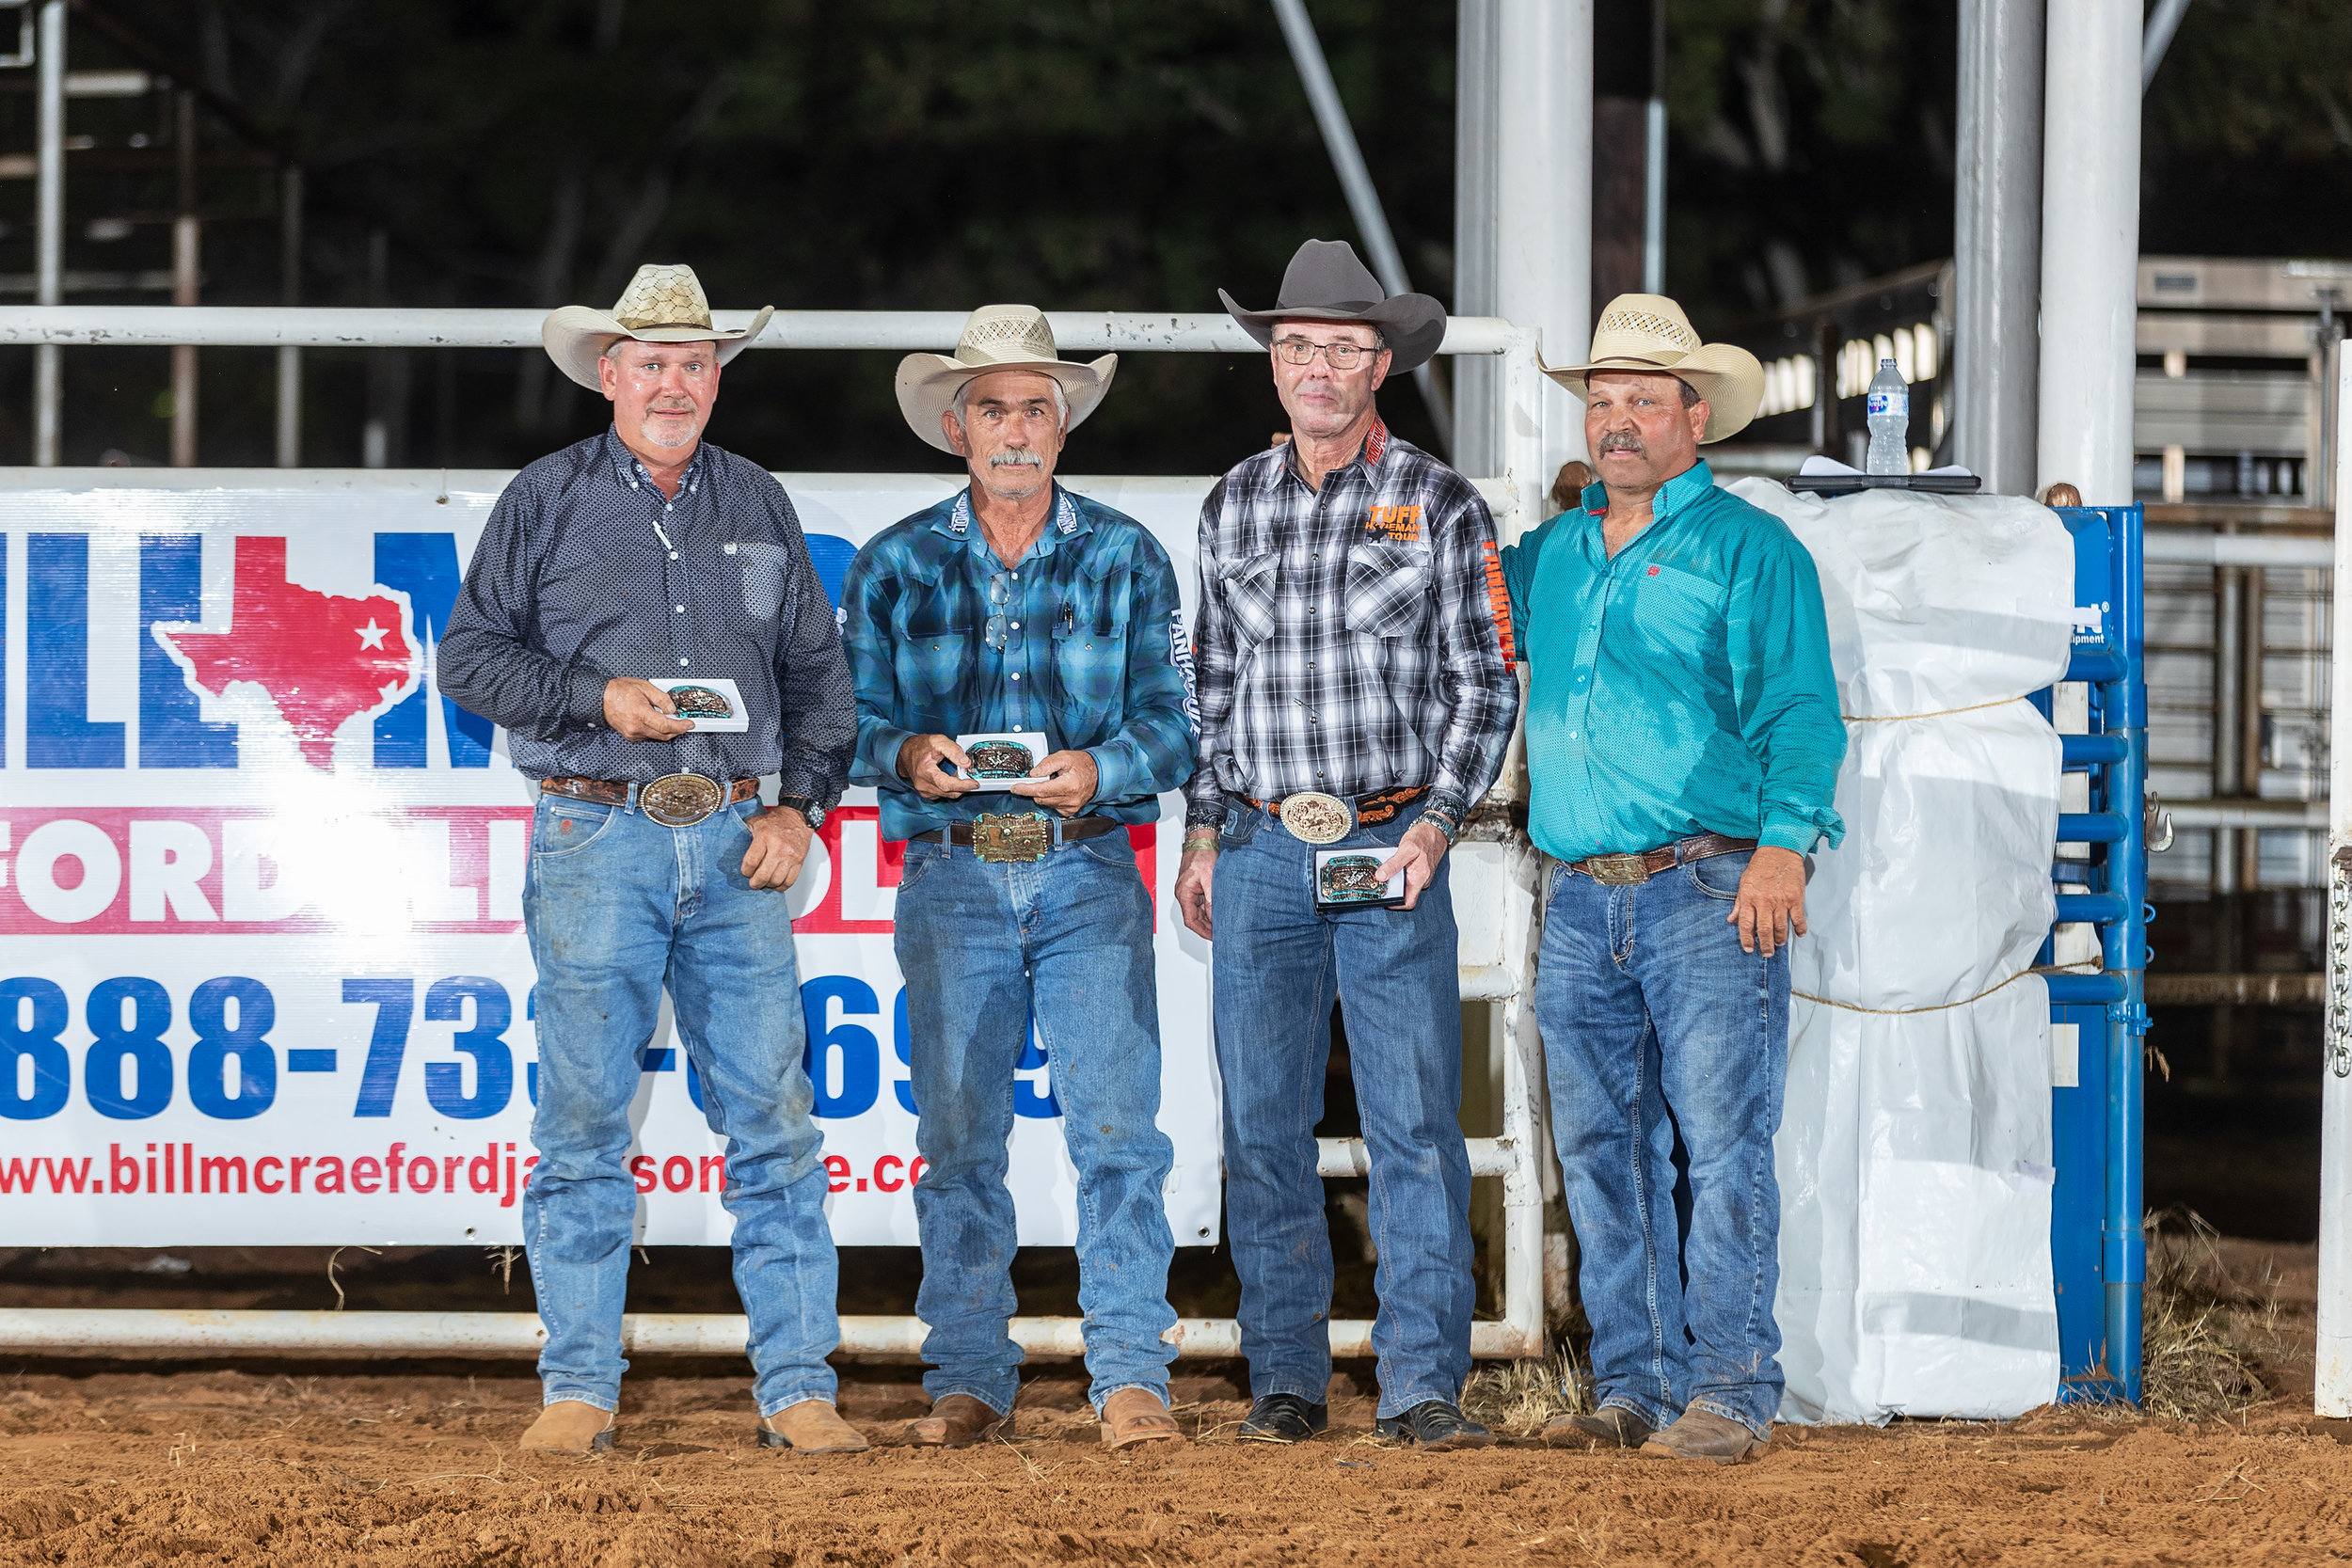 Jeff Harris presents trophy buckles to Tuff Hedeman and stock Contractors Lyndal Hurst, and Mike Rawson thanking them for their time and efforts in supporting the event that serves as the primary fundraiser for the Cherokee County 4-H and FFA Scholarship programs.